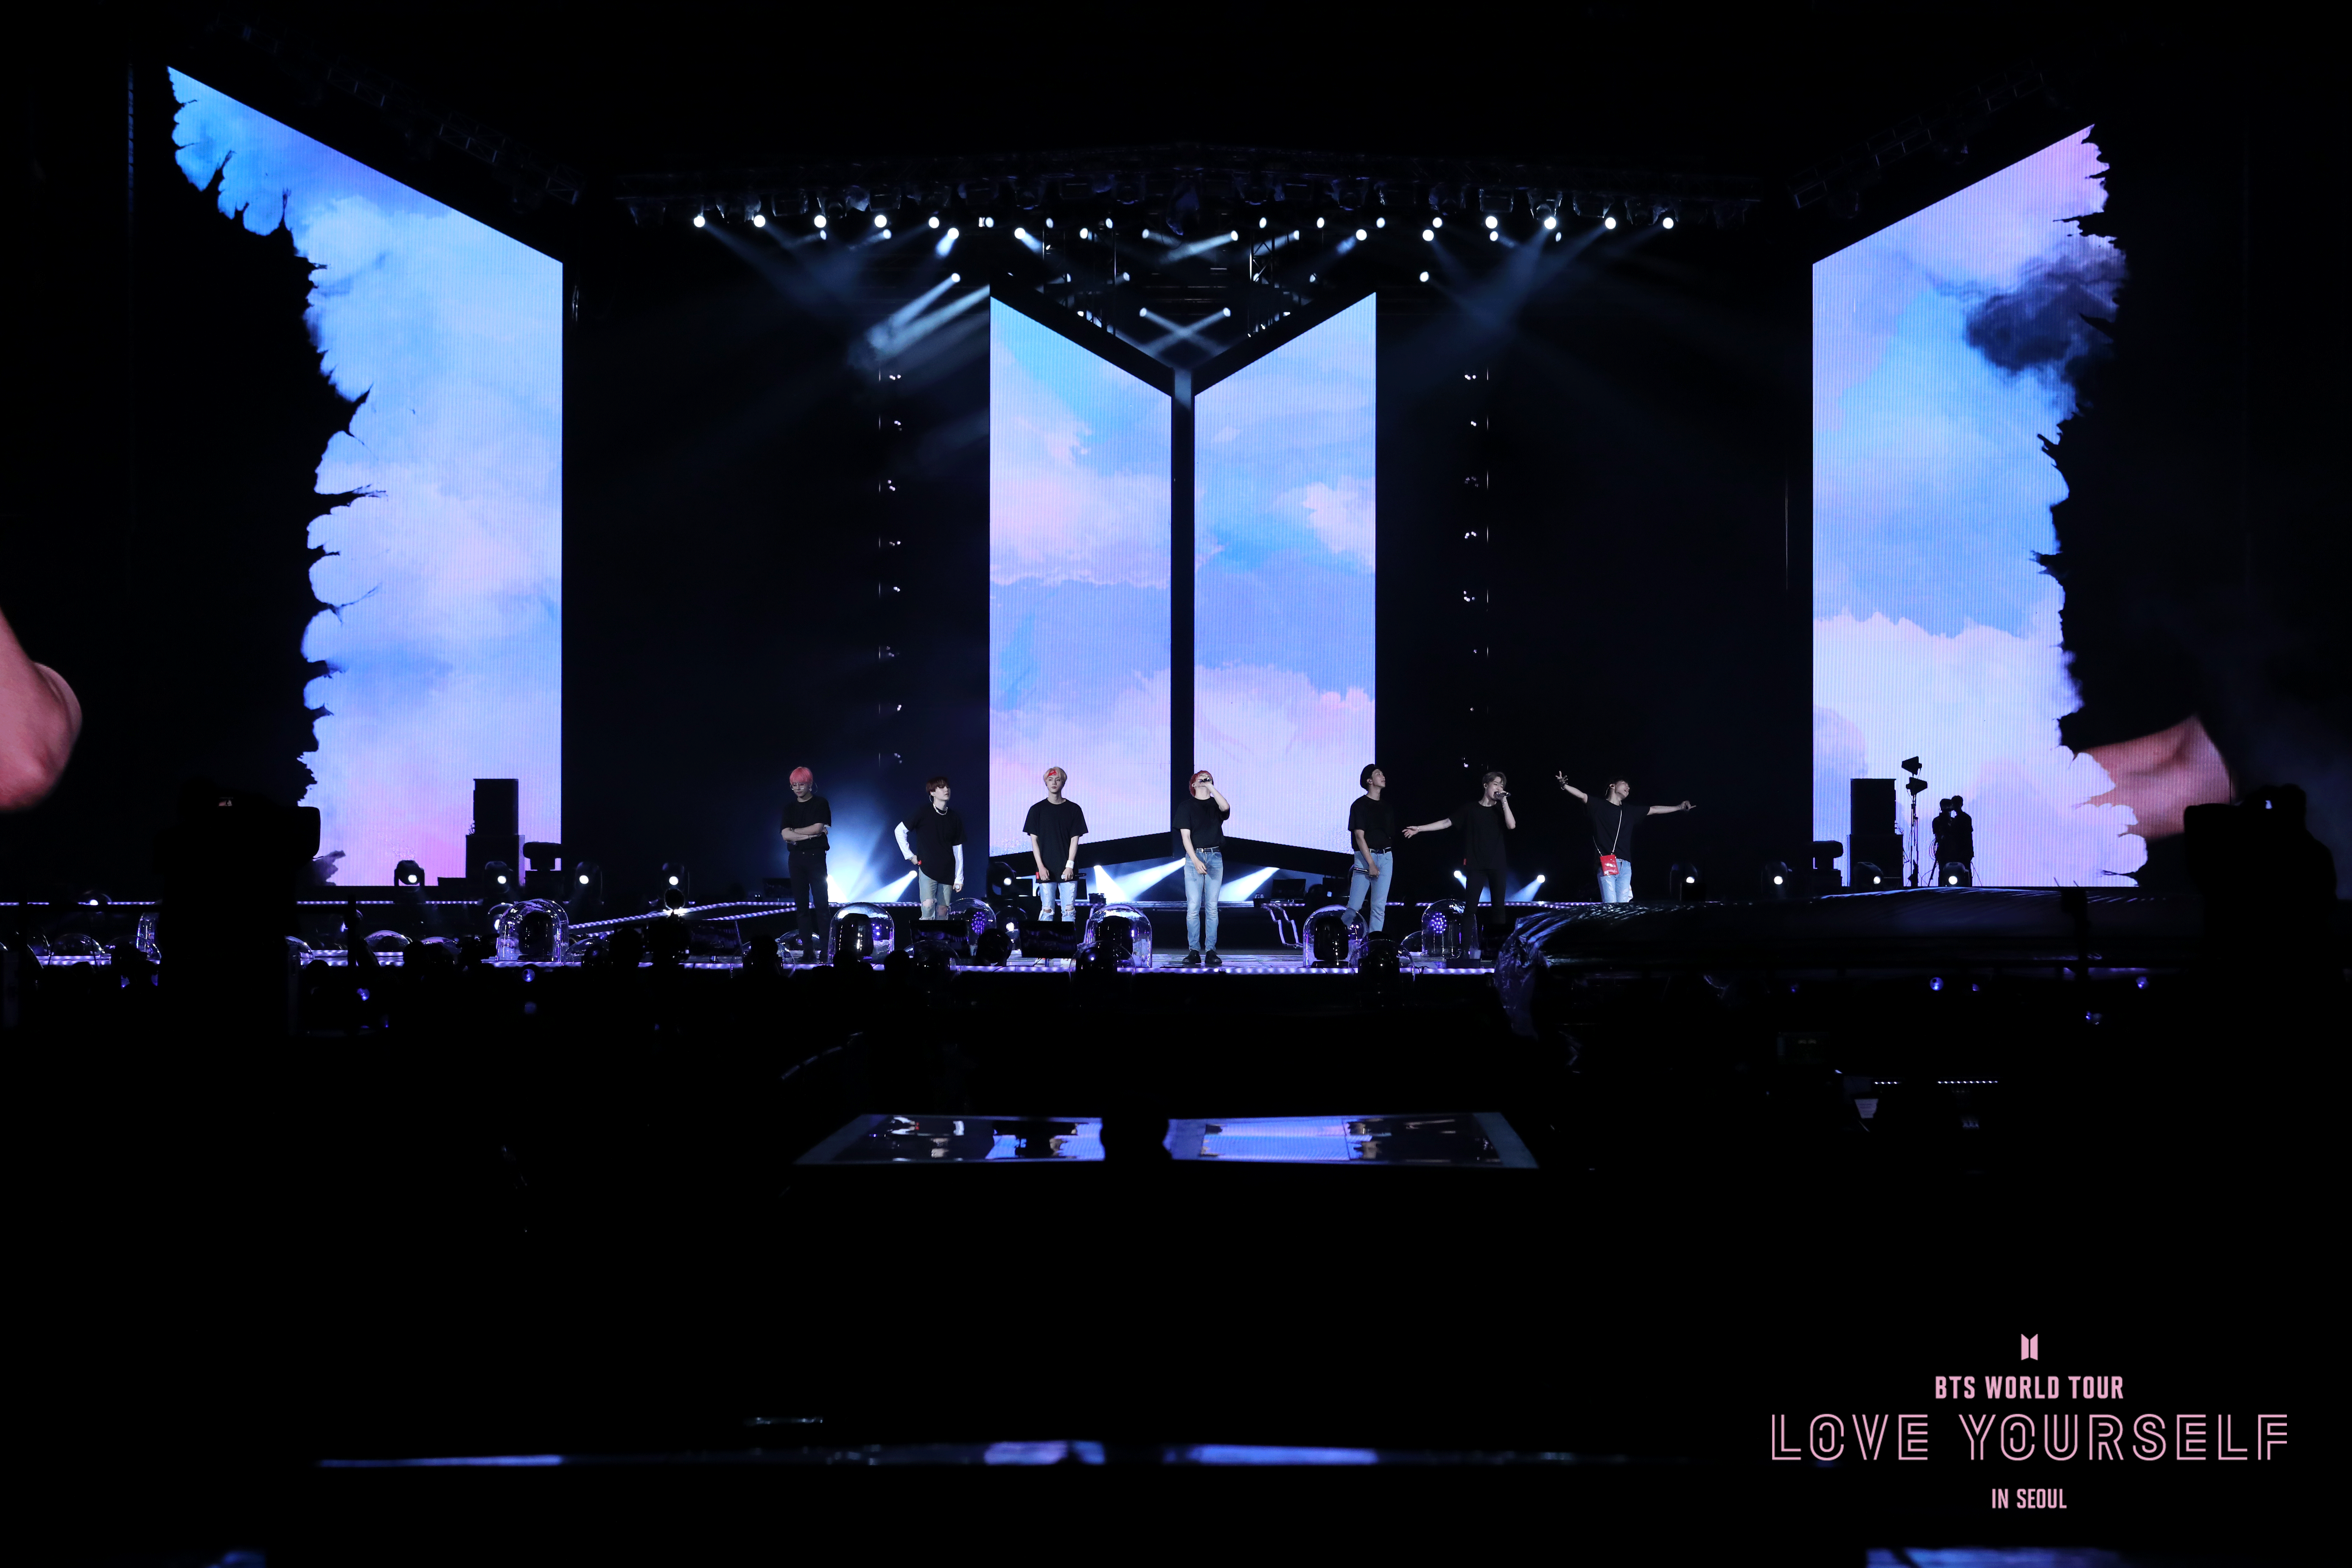 BTS LOVE YOURSELF IN SEOUL - photo 4